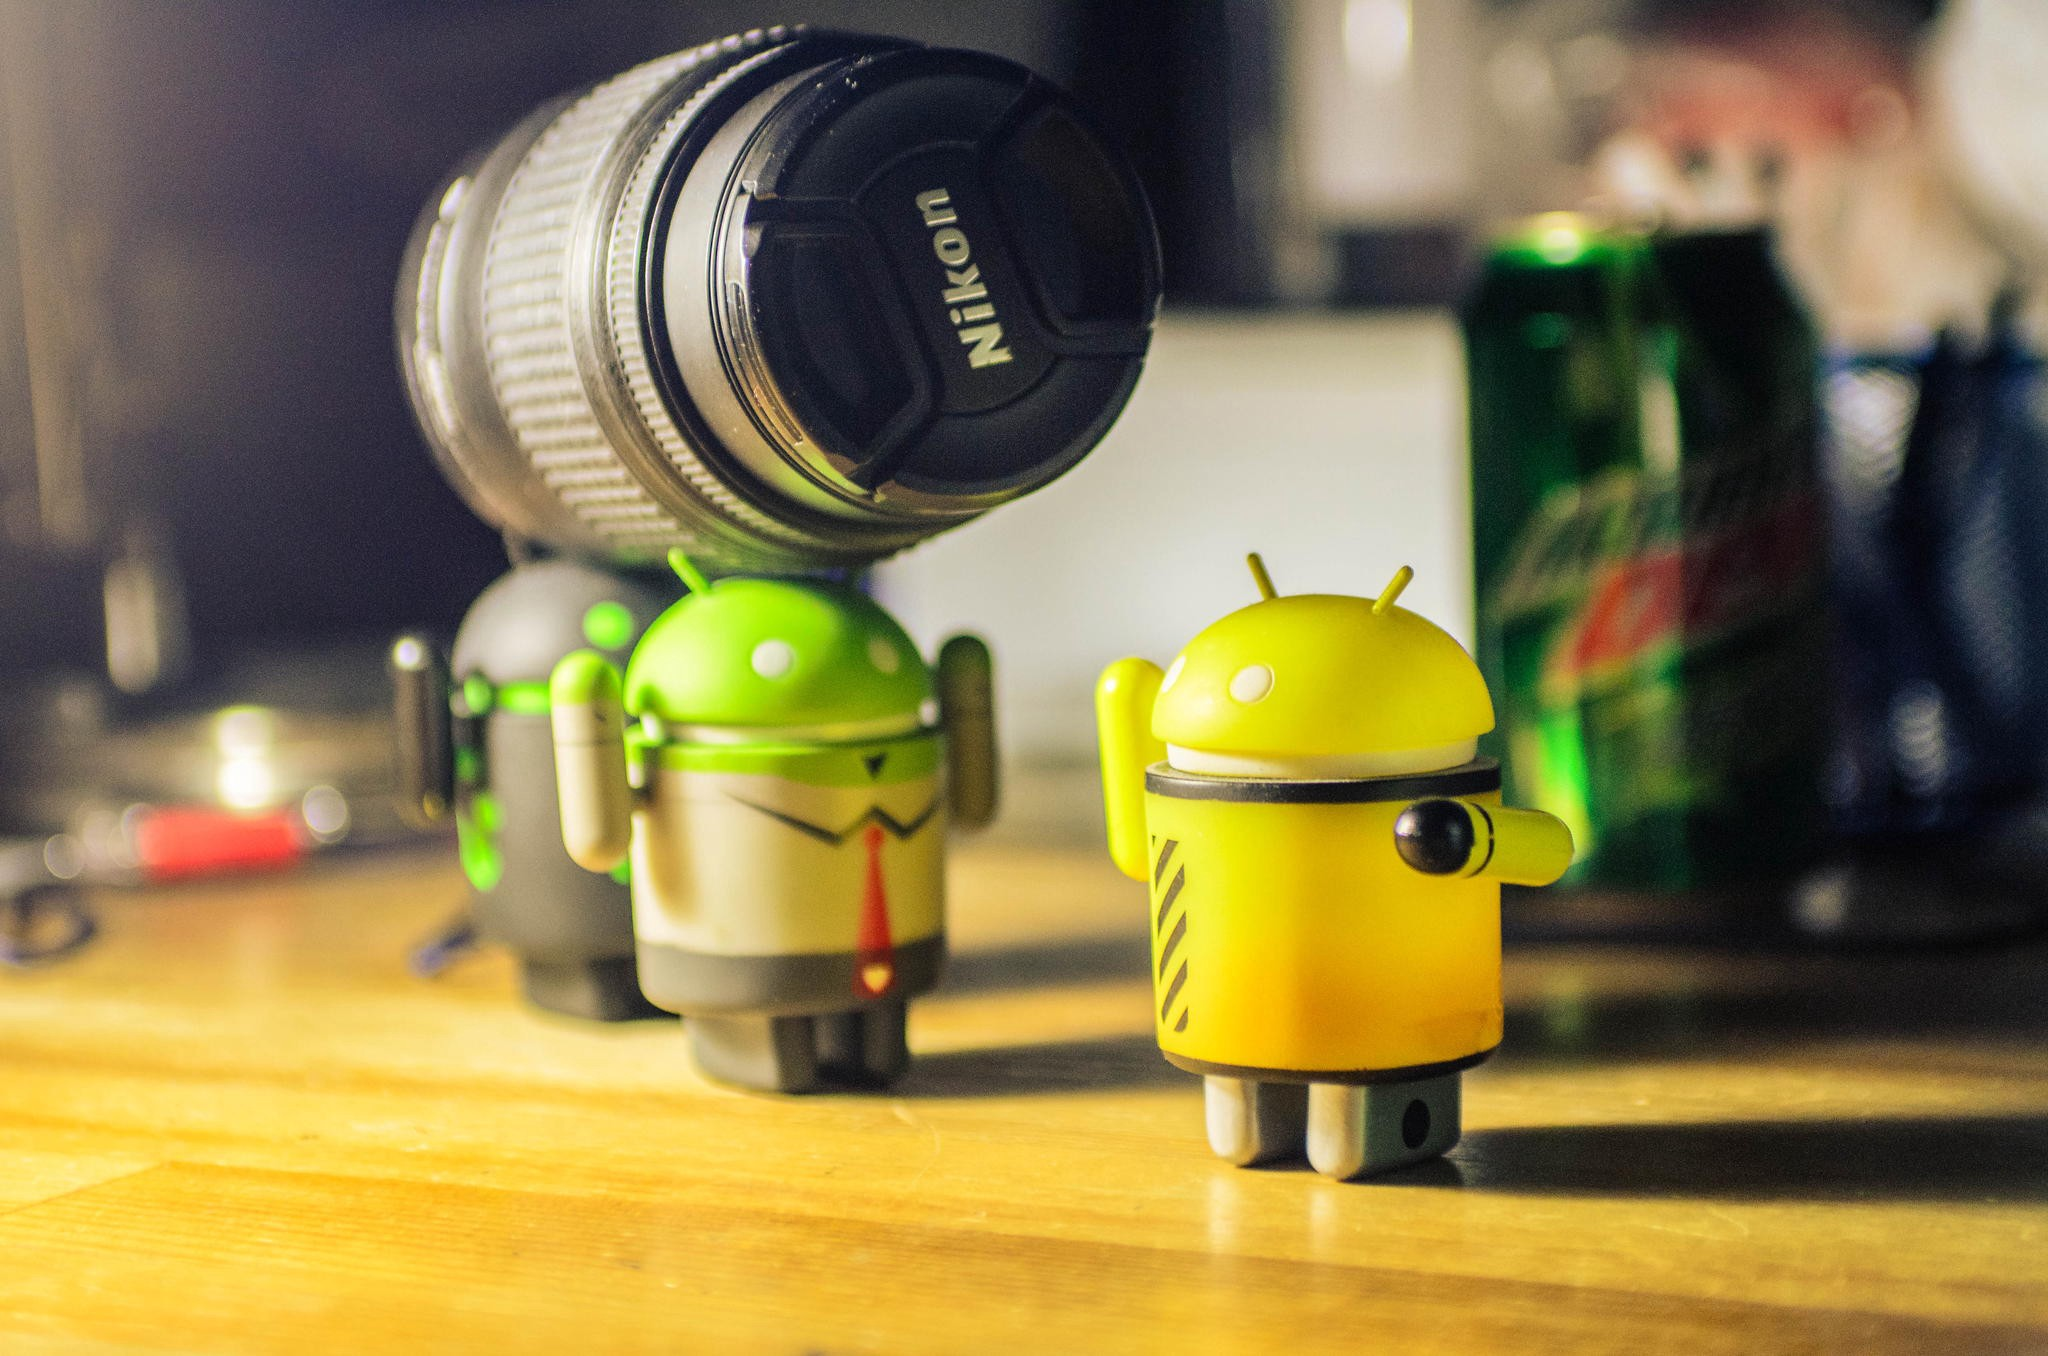 Android Image Loading from a String URL - Christopher Ross - Medium